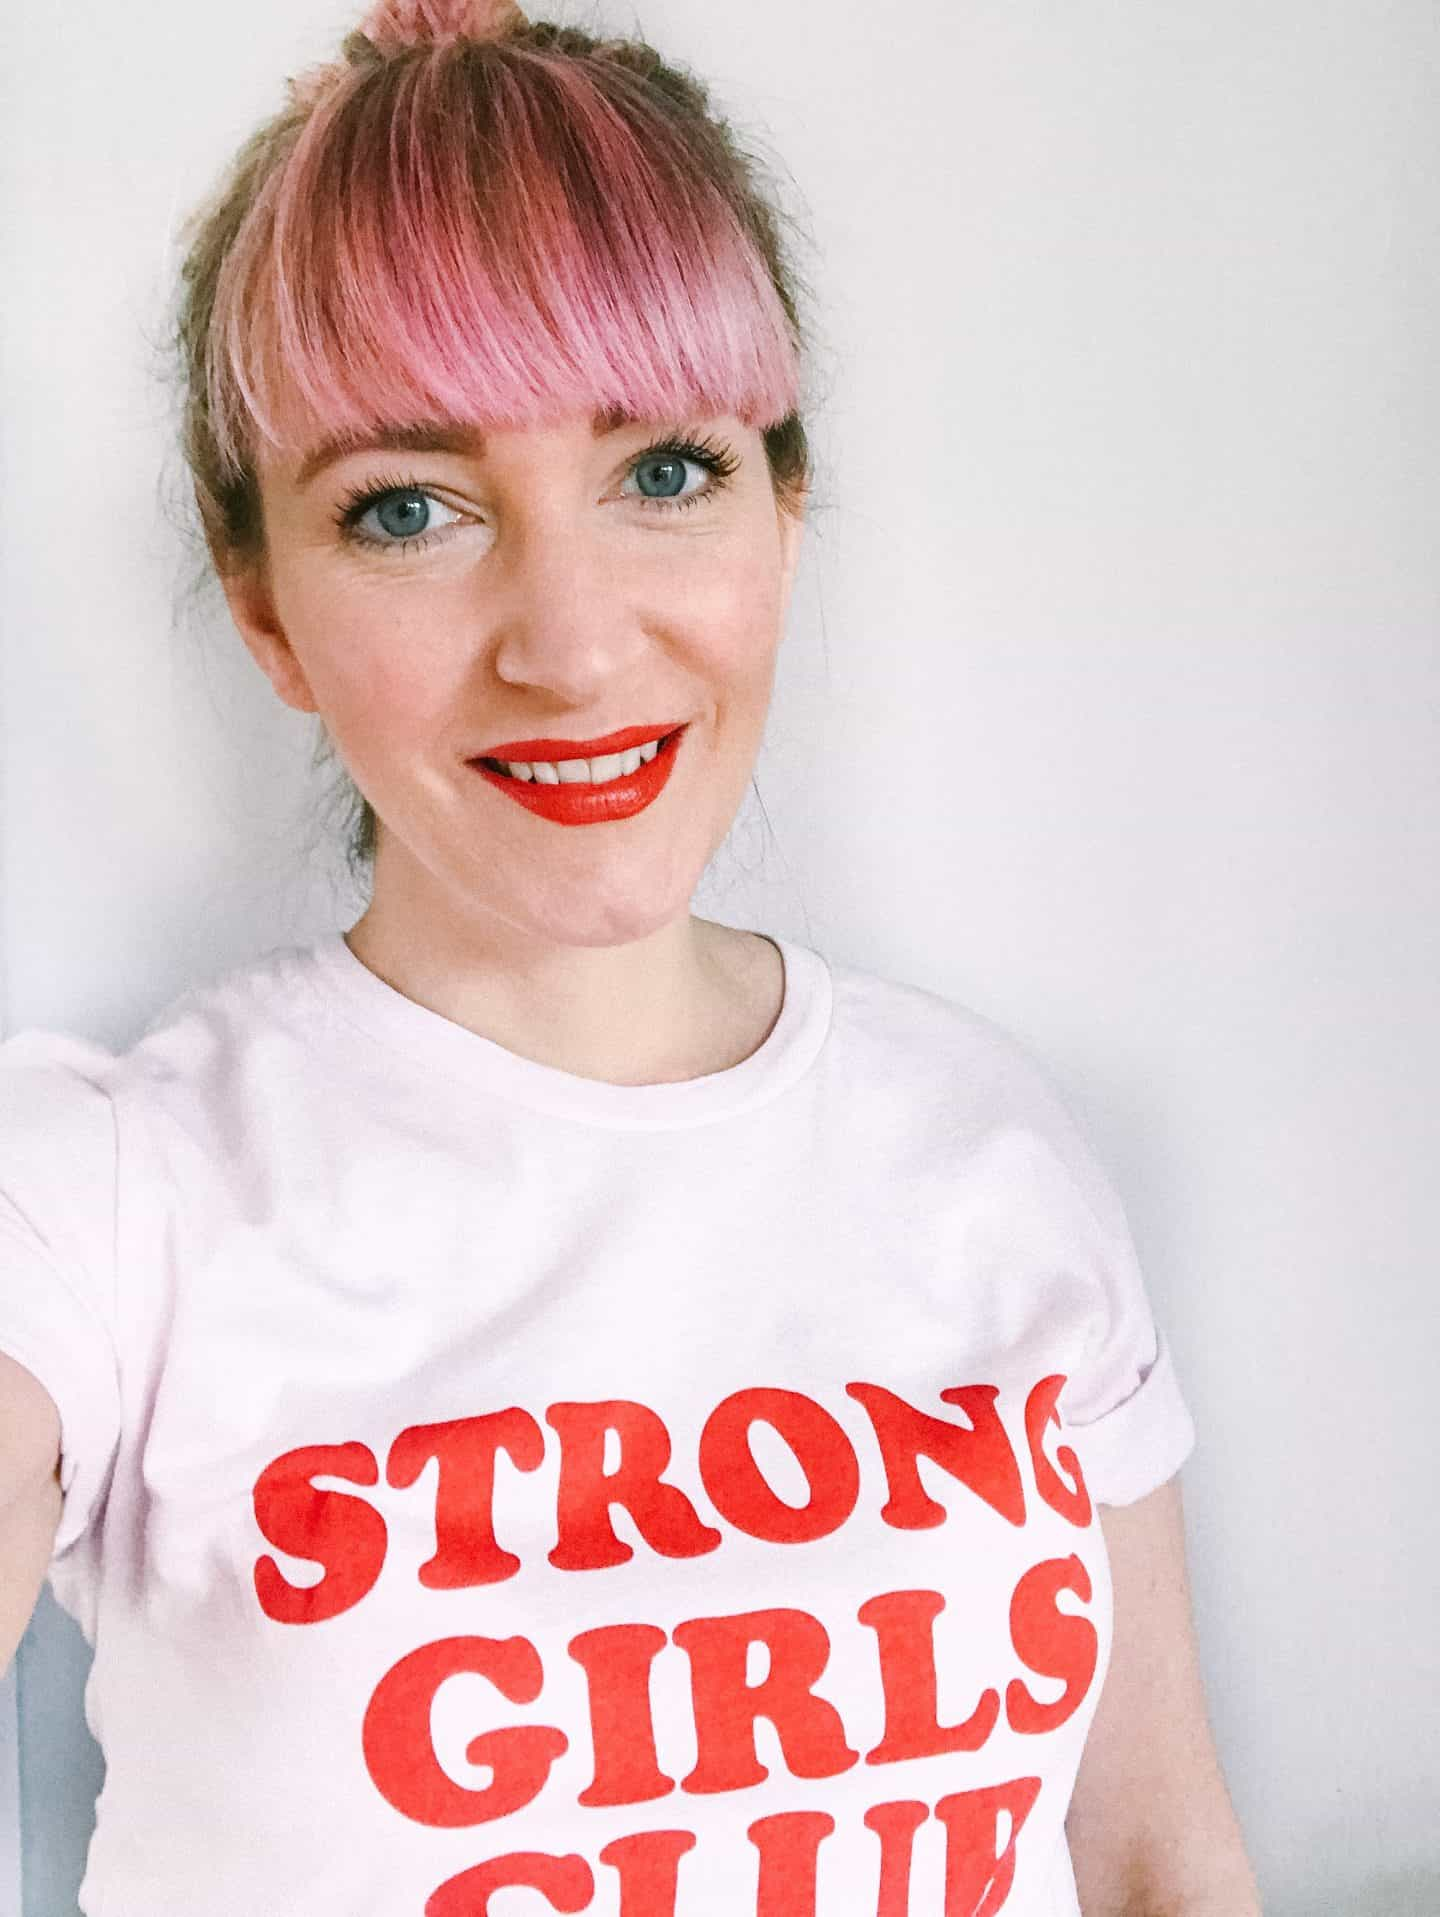 Becky Pink wearing a organic, ethical Strong Girls Club empowerment T-shirt from Mutha.Hood